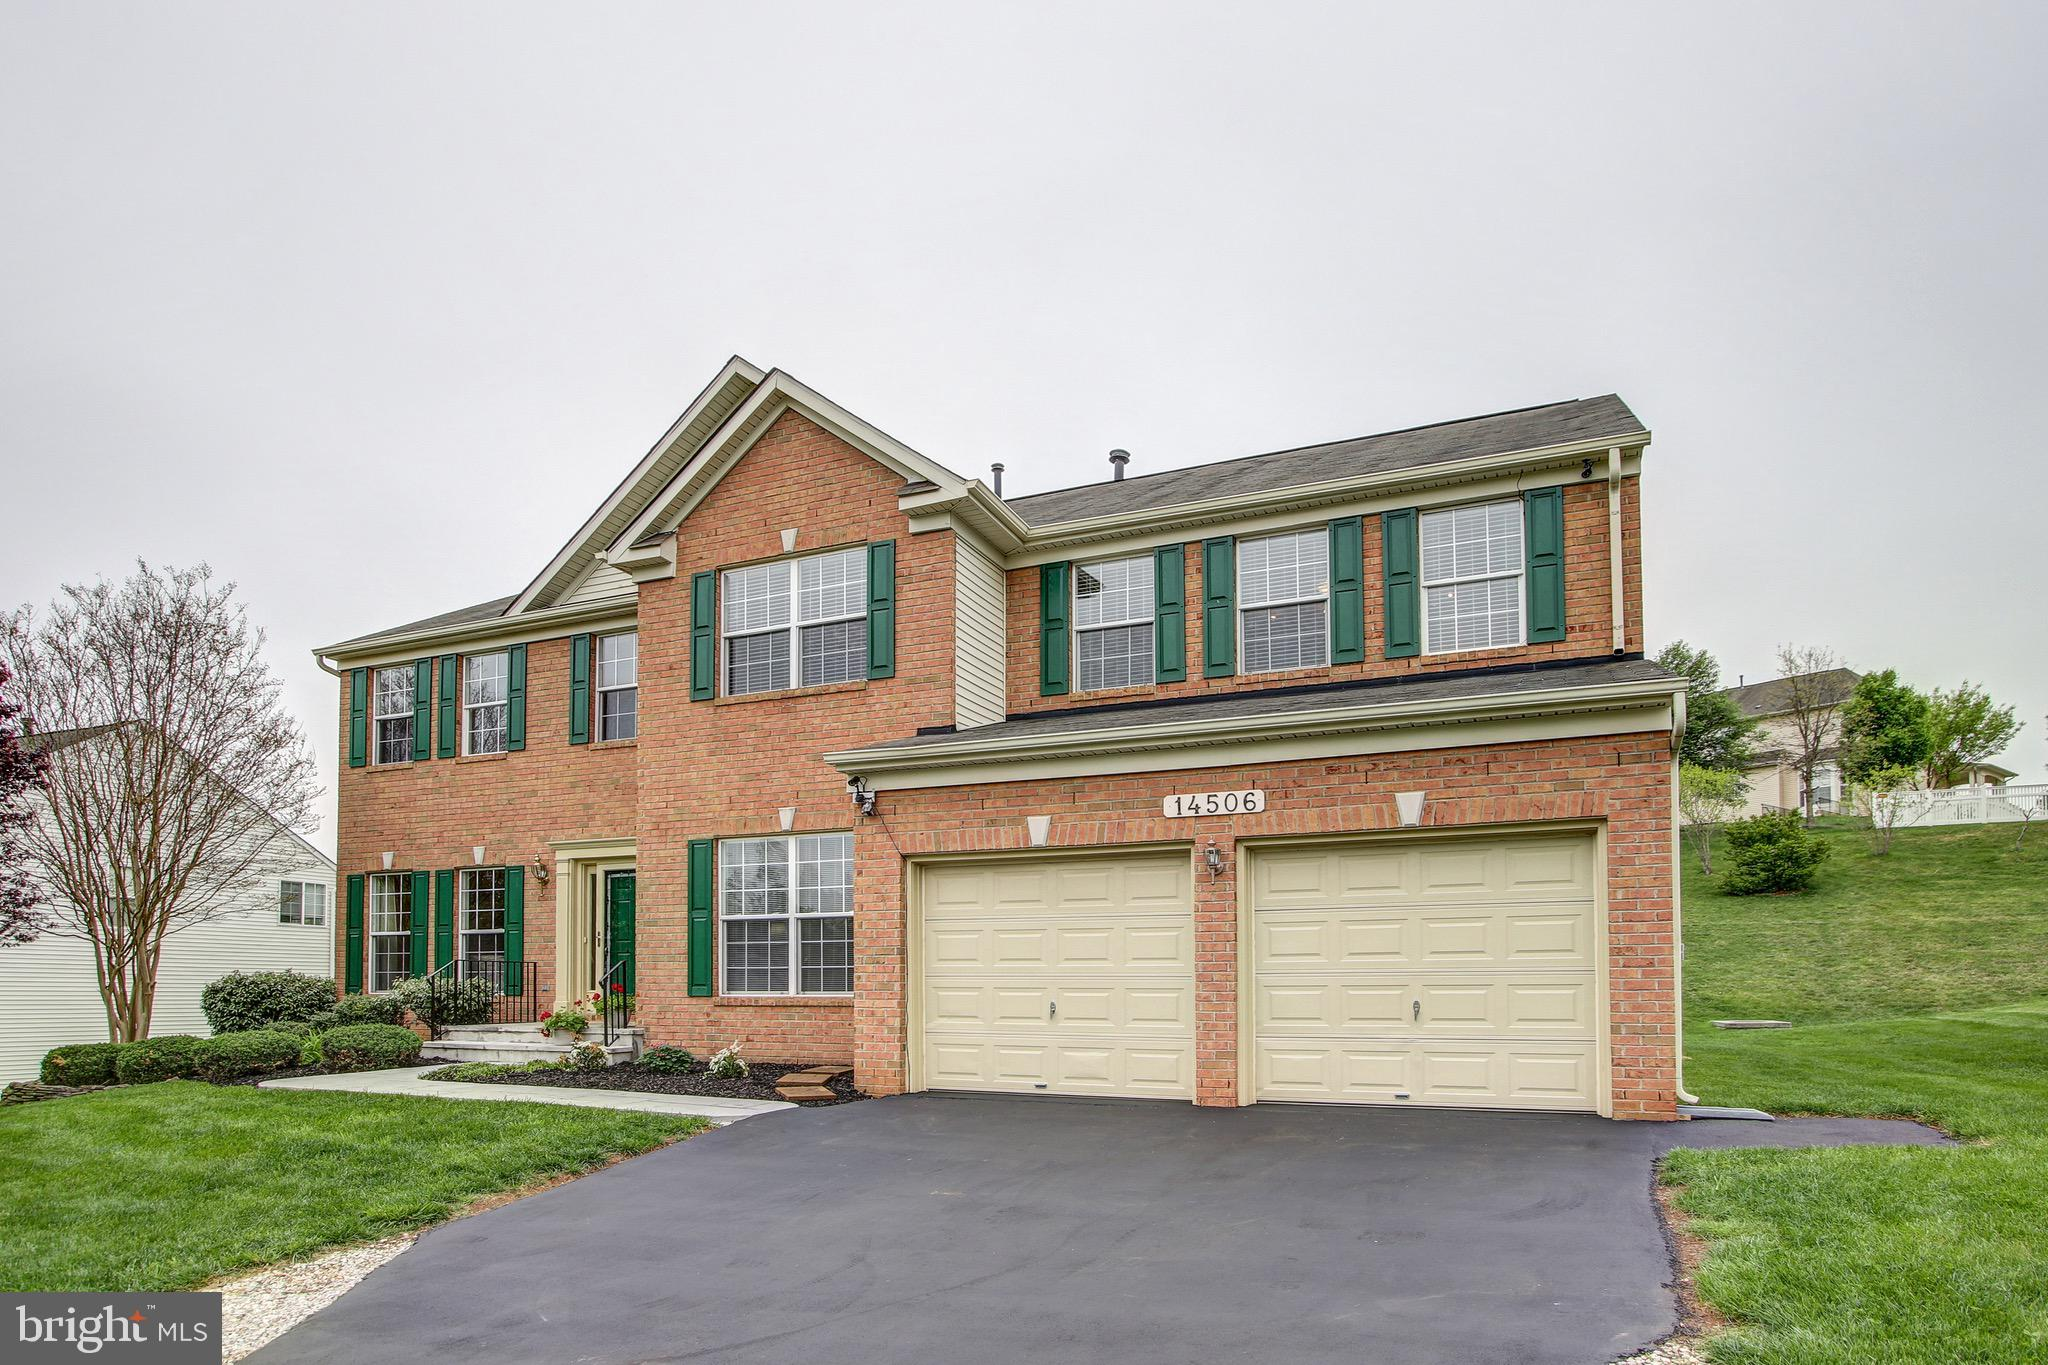 14506 BUBBLING SPRING ROAD, BOYDS, MD 20841